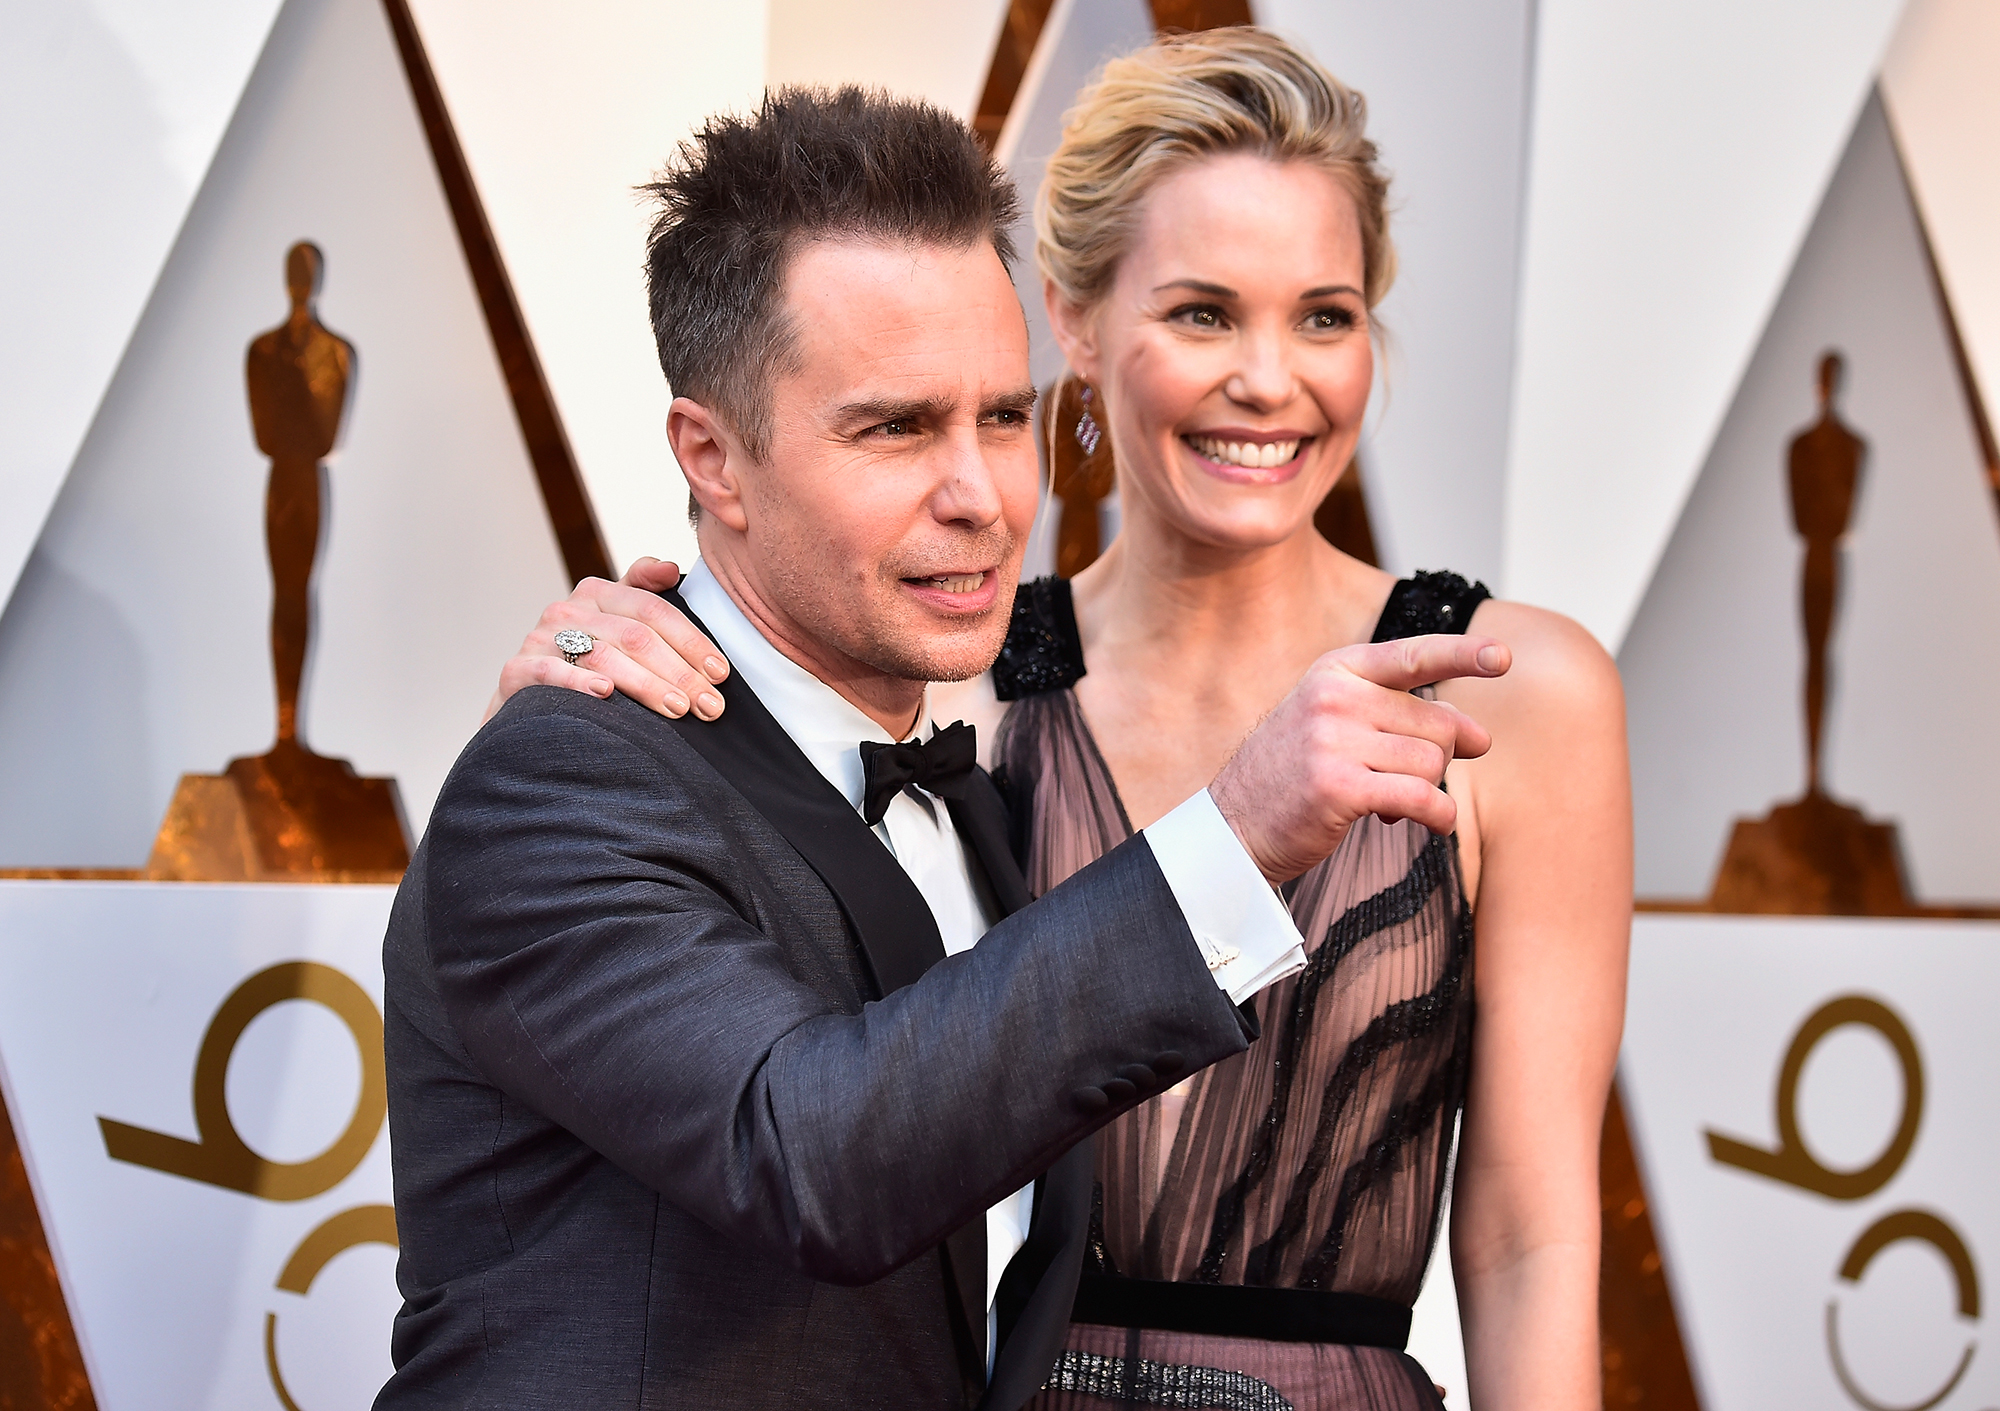 The Best Dressed Men At The 90th Academy Awards (aka The Oscars)